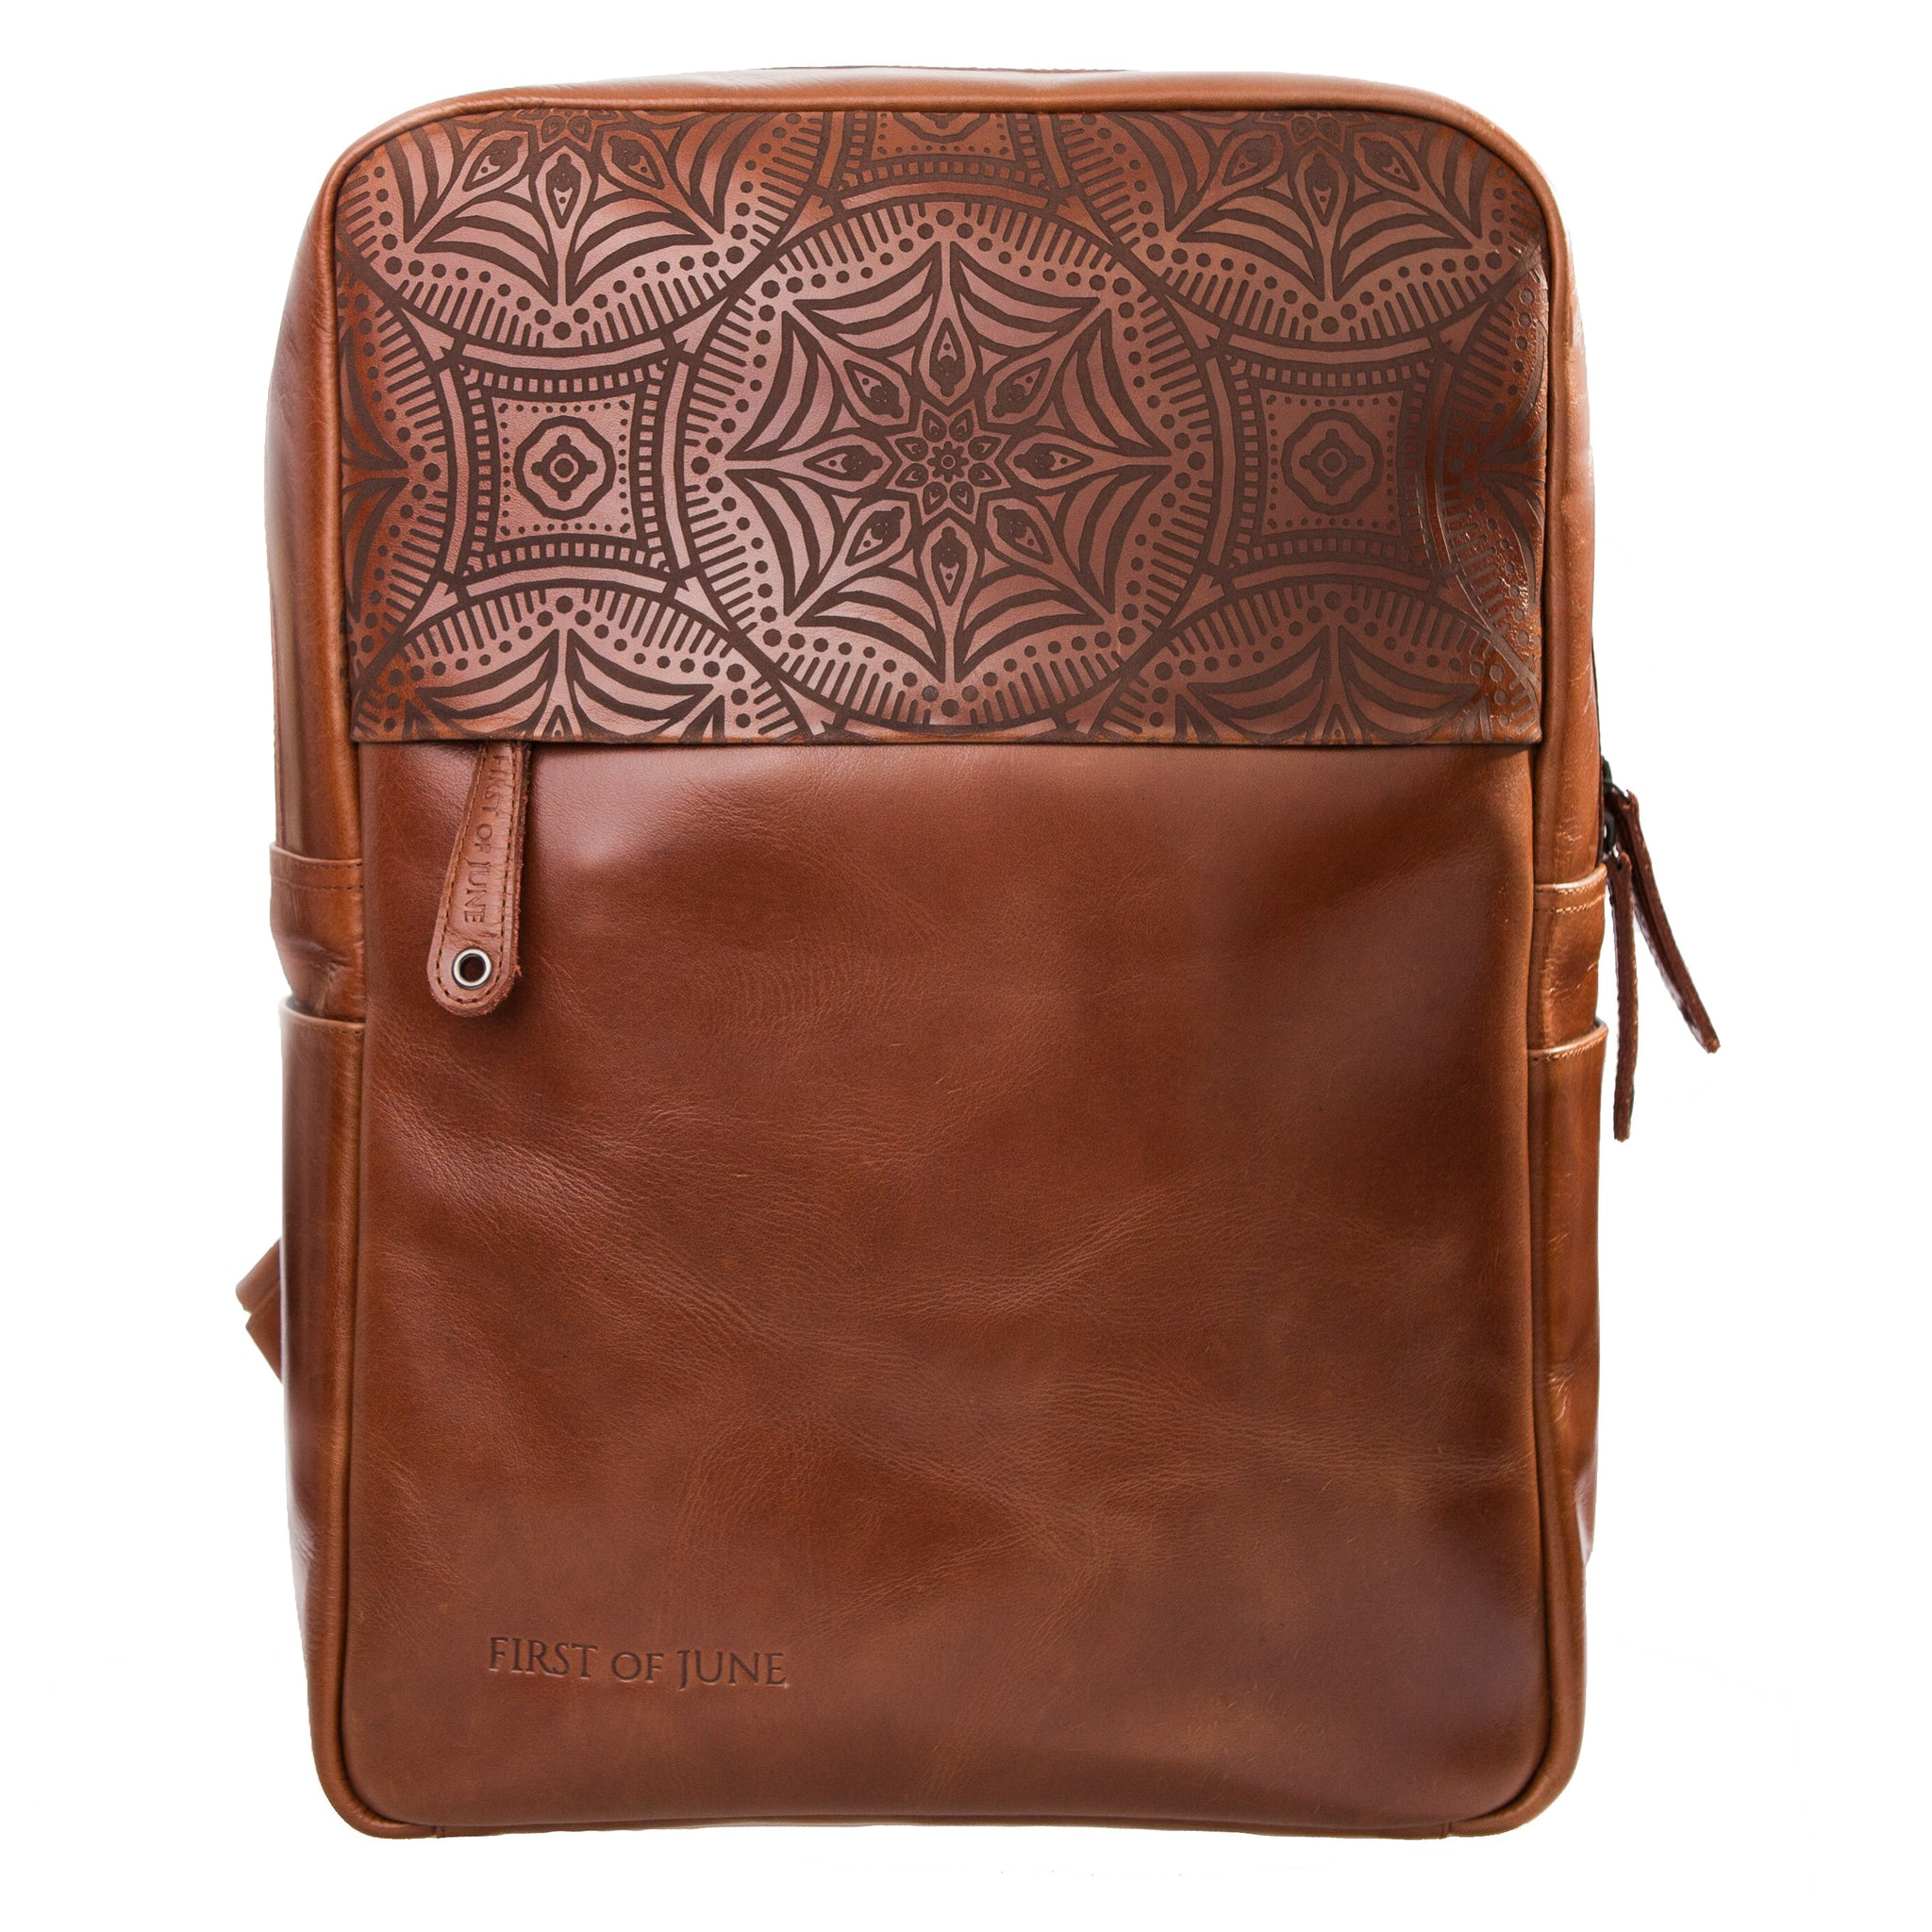 First of June, Rama, leather bag, vegetable tanned leather